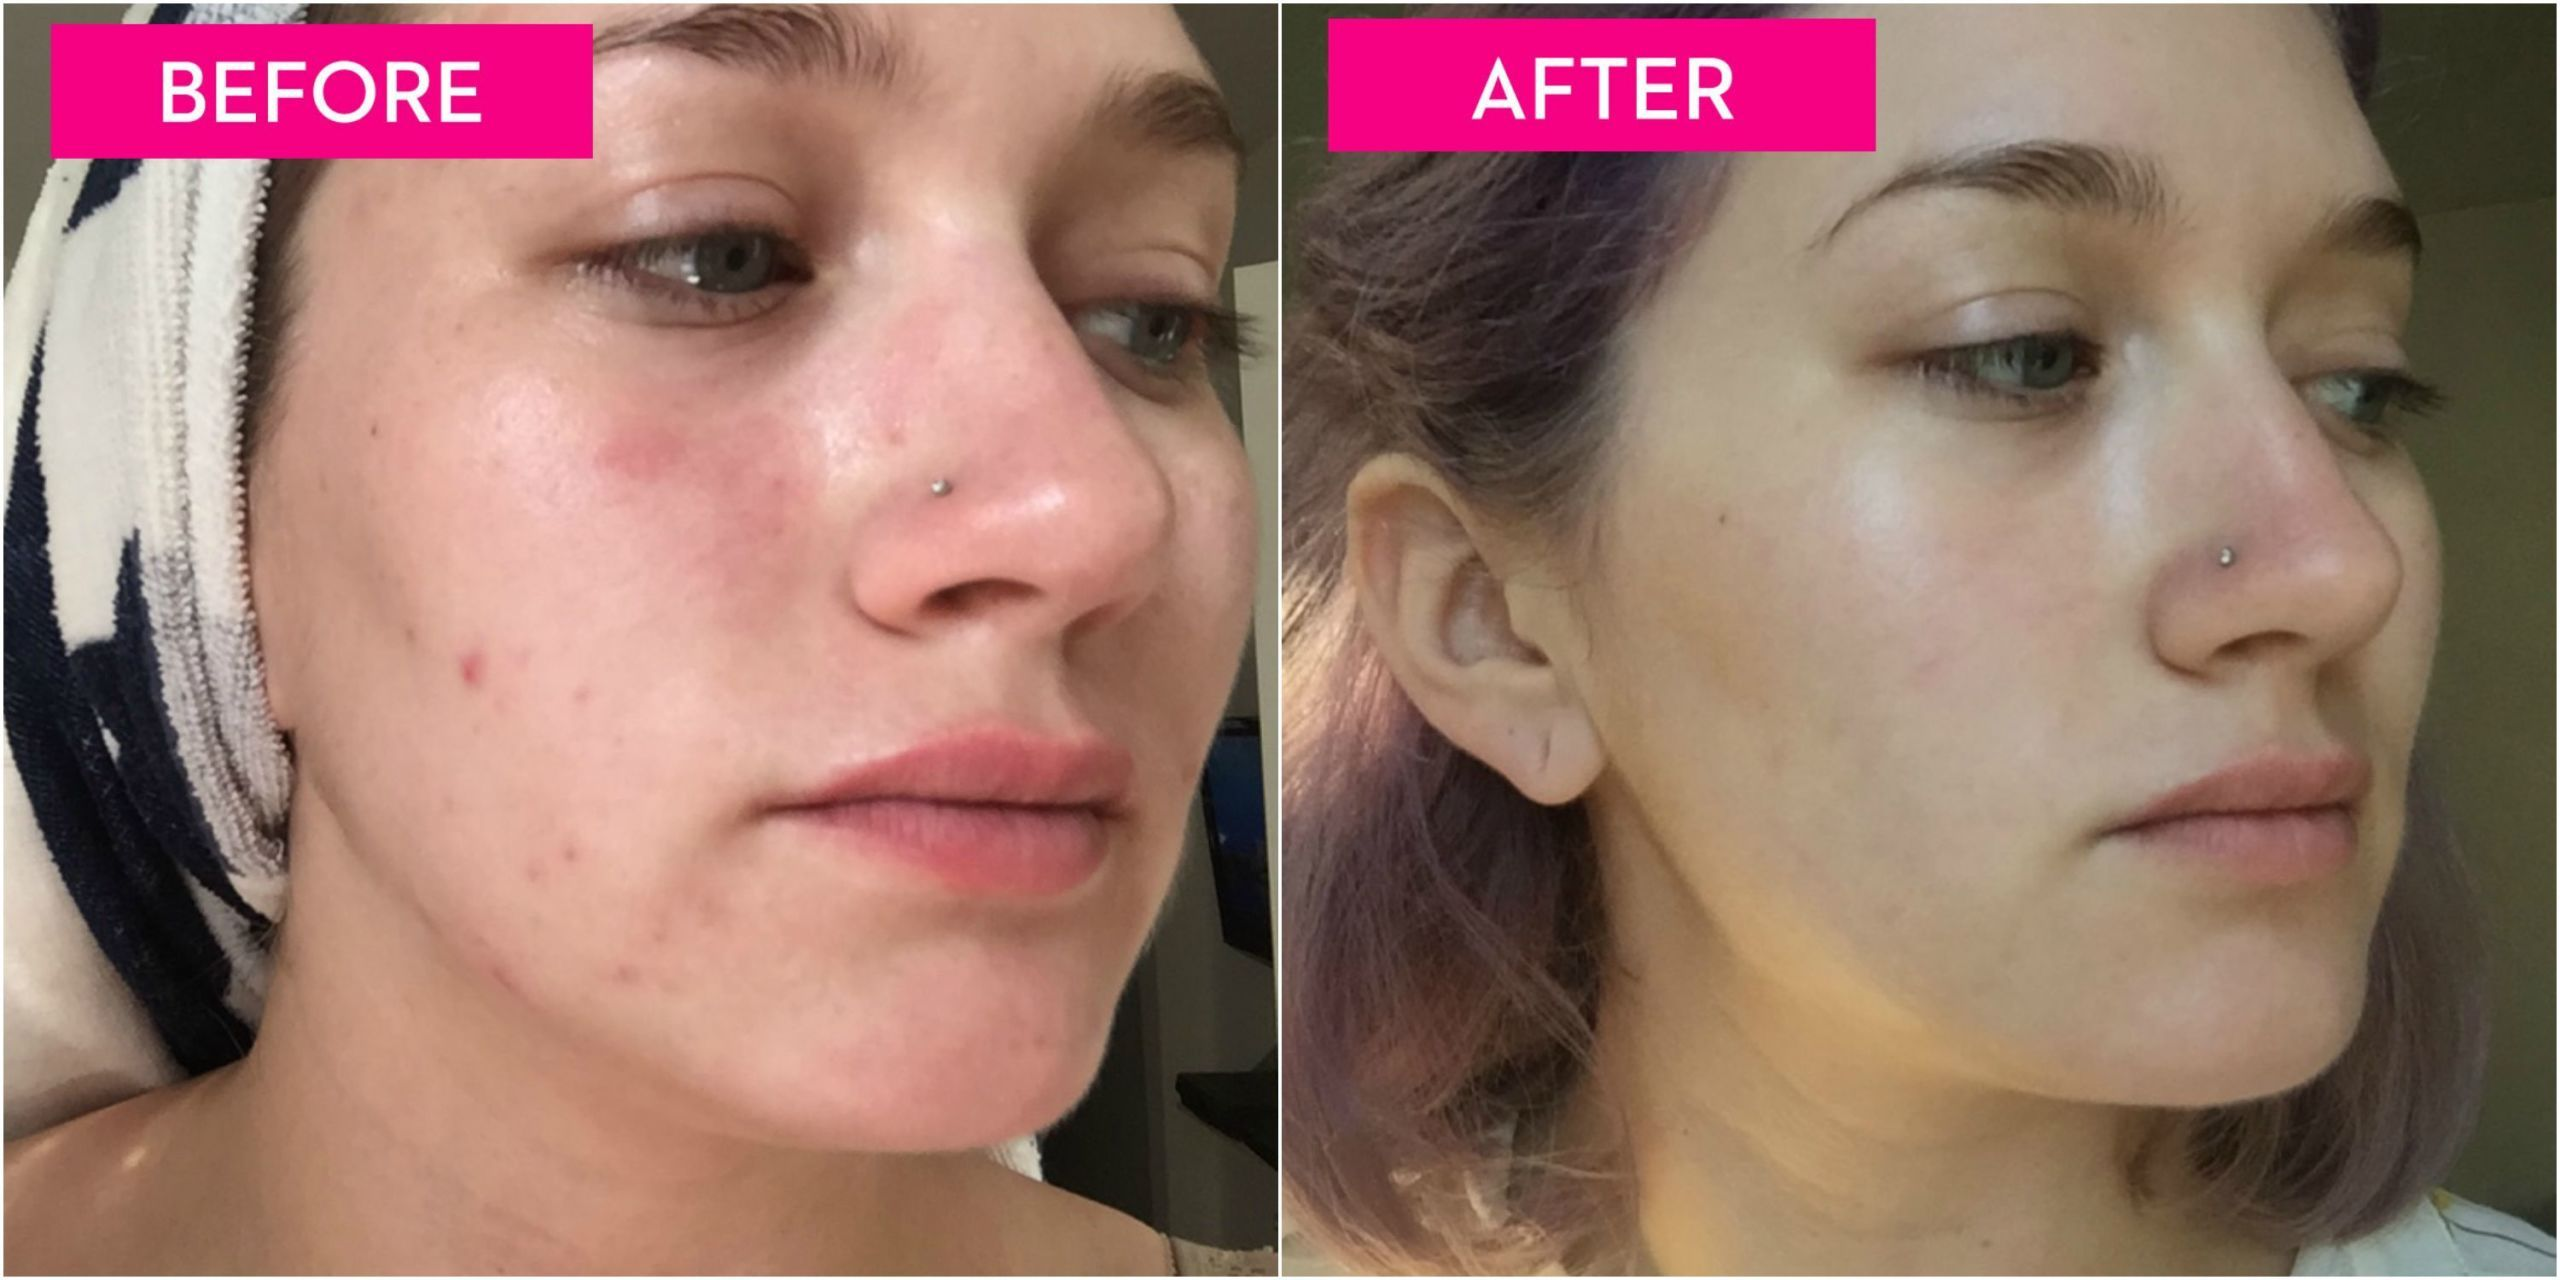 Why acne after facial